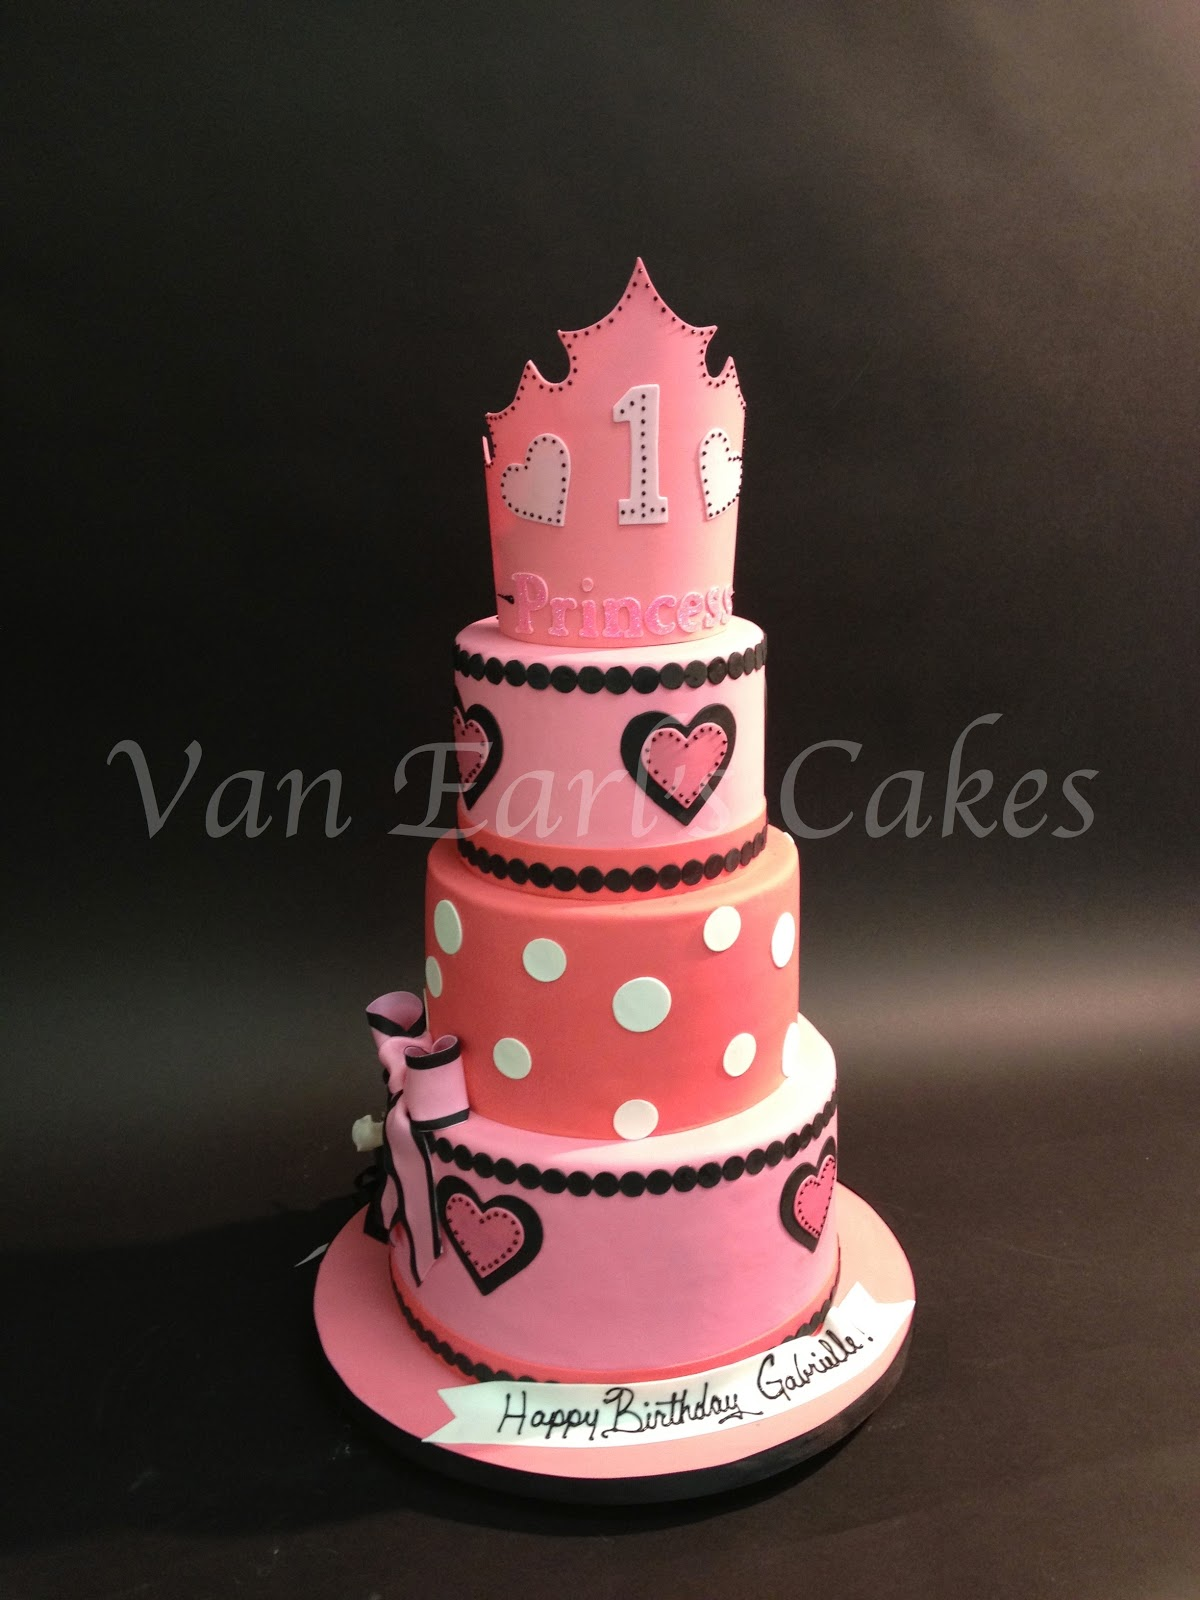 Van Earls Cakes: 1st Princess Birthday Cake